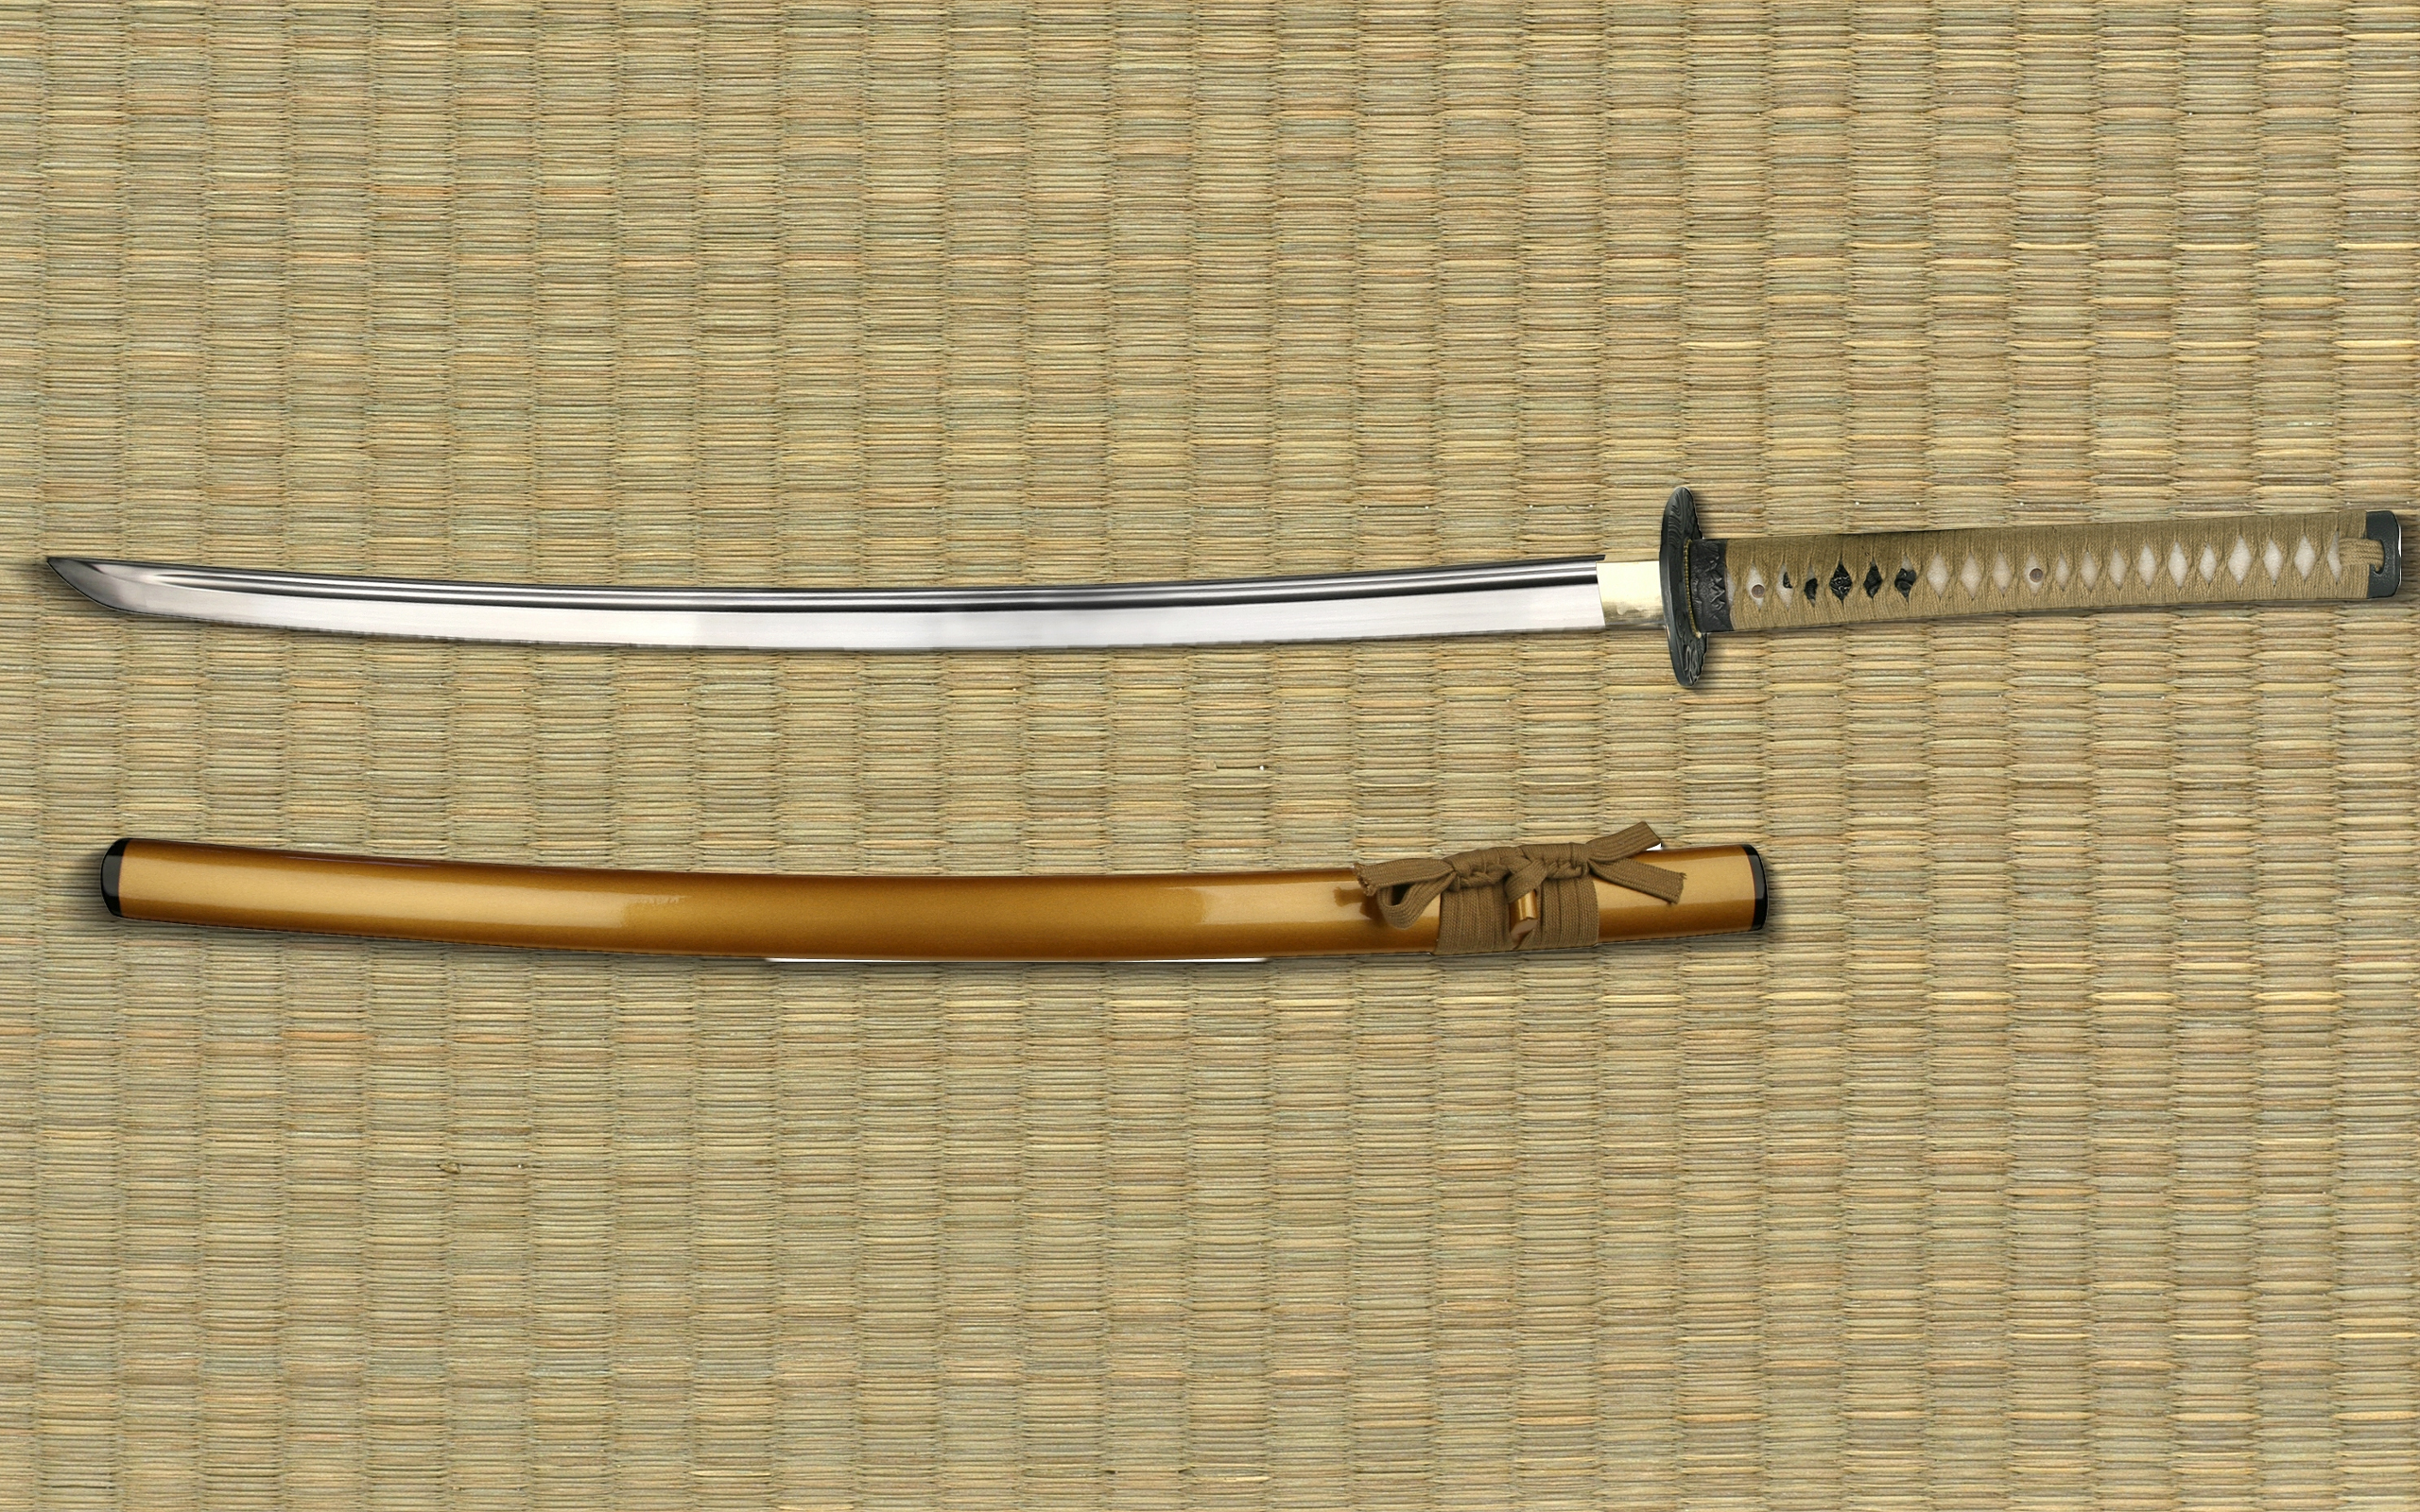 Samurai Sword Hd Wallpaper Background Image 2560x1600 Id